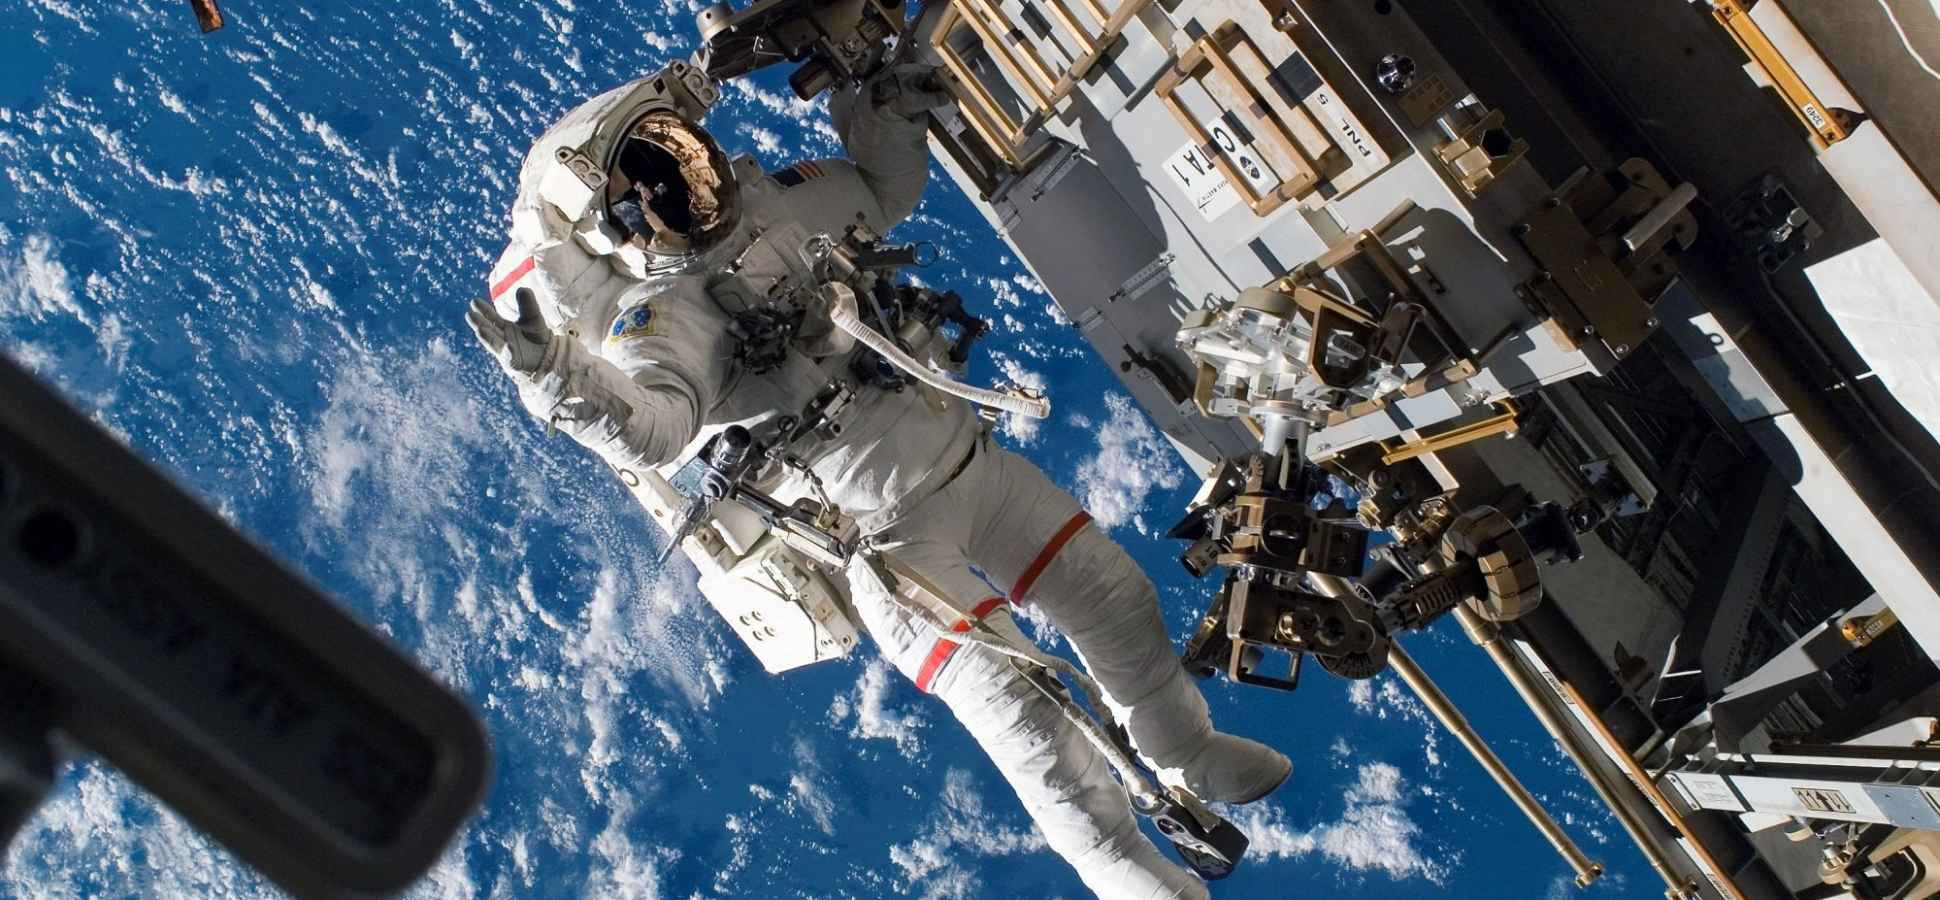 Want to Hire the Best? Copy How NASA Narrowed 18,300 Applicants Down to 12